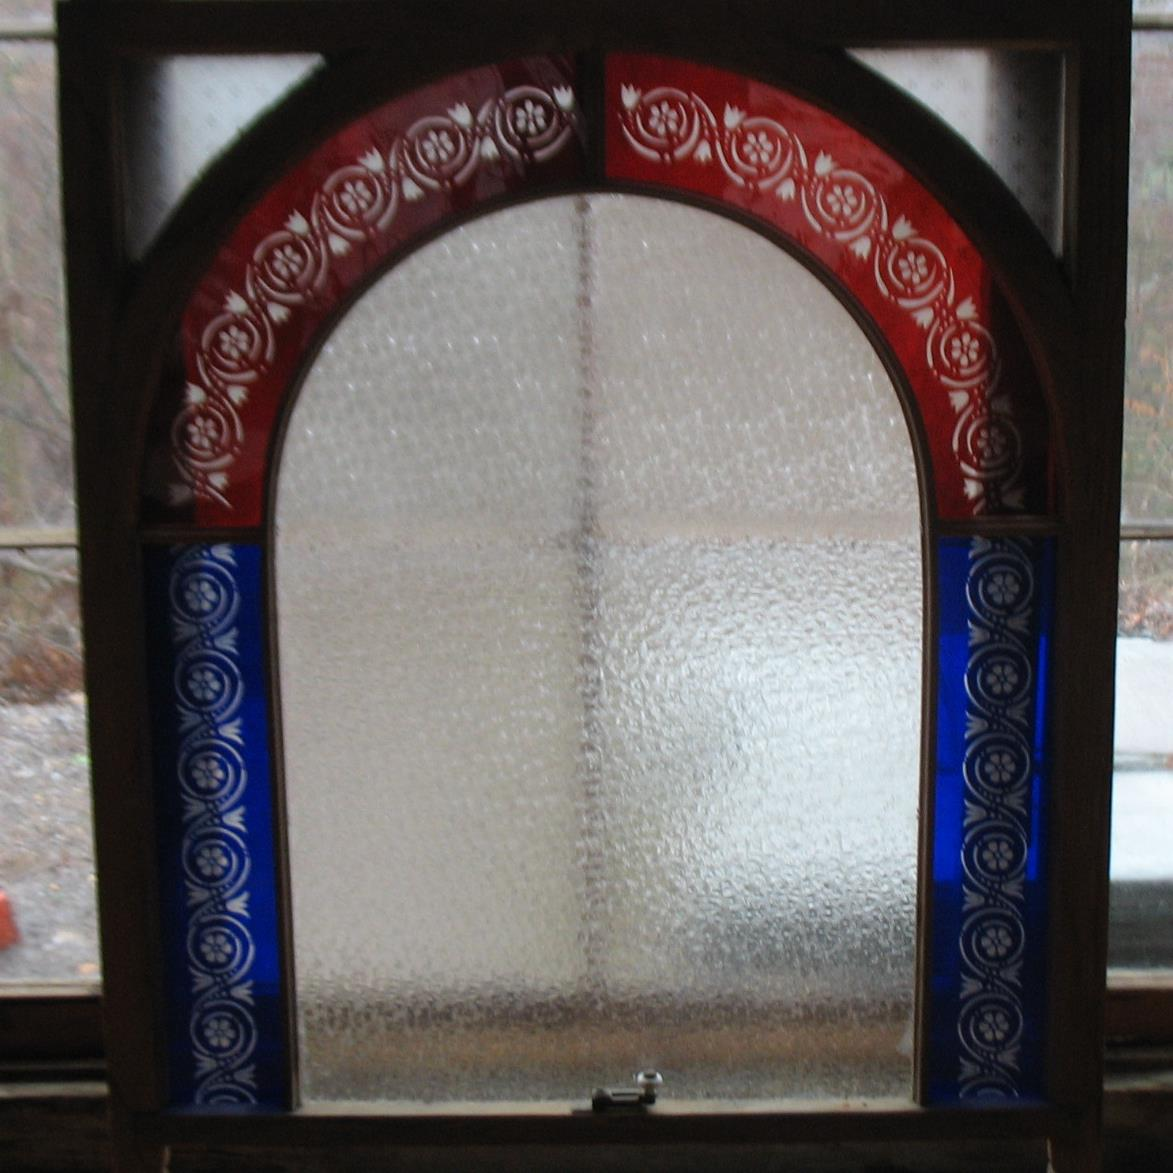 Magnificent Piece of Ruby Red and Cobalt Blue stained glass with floral etchings in each colored piece with Italian Crinkle Glass in center. Has original hardware at bottom of glass.